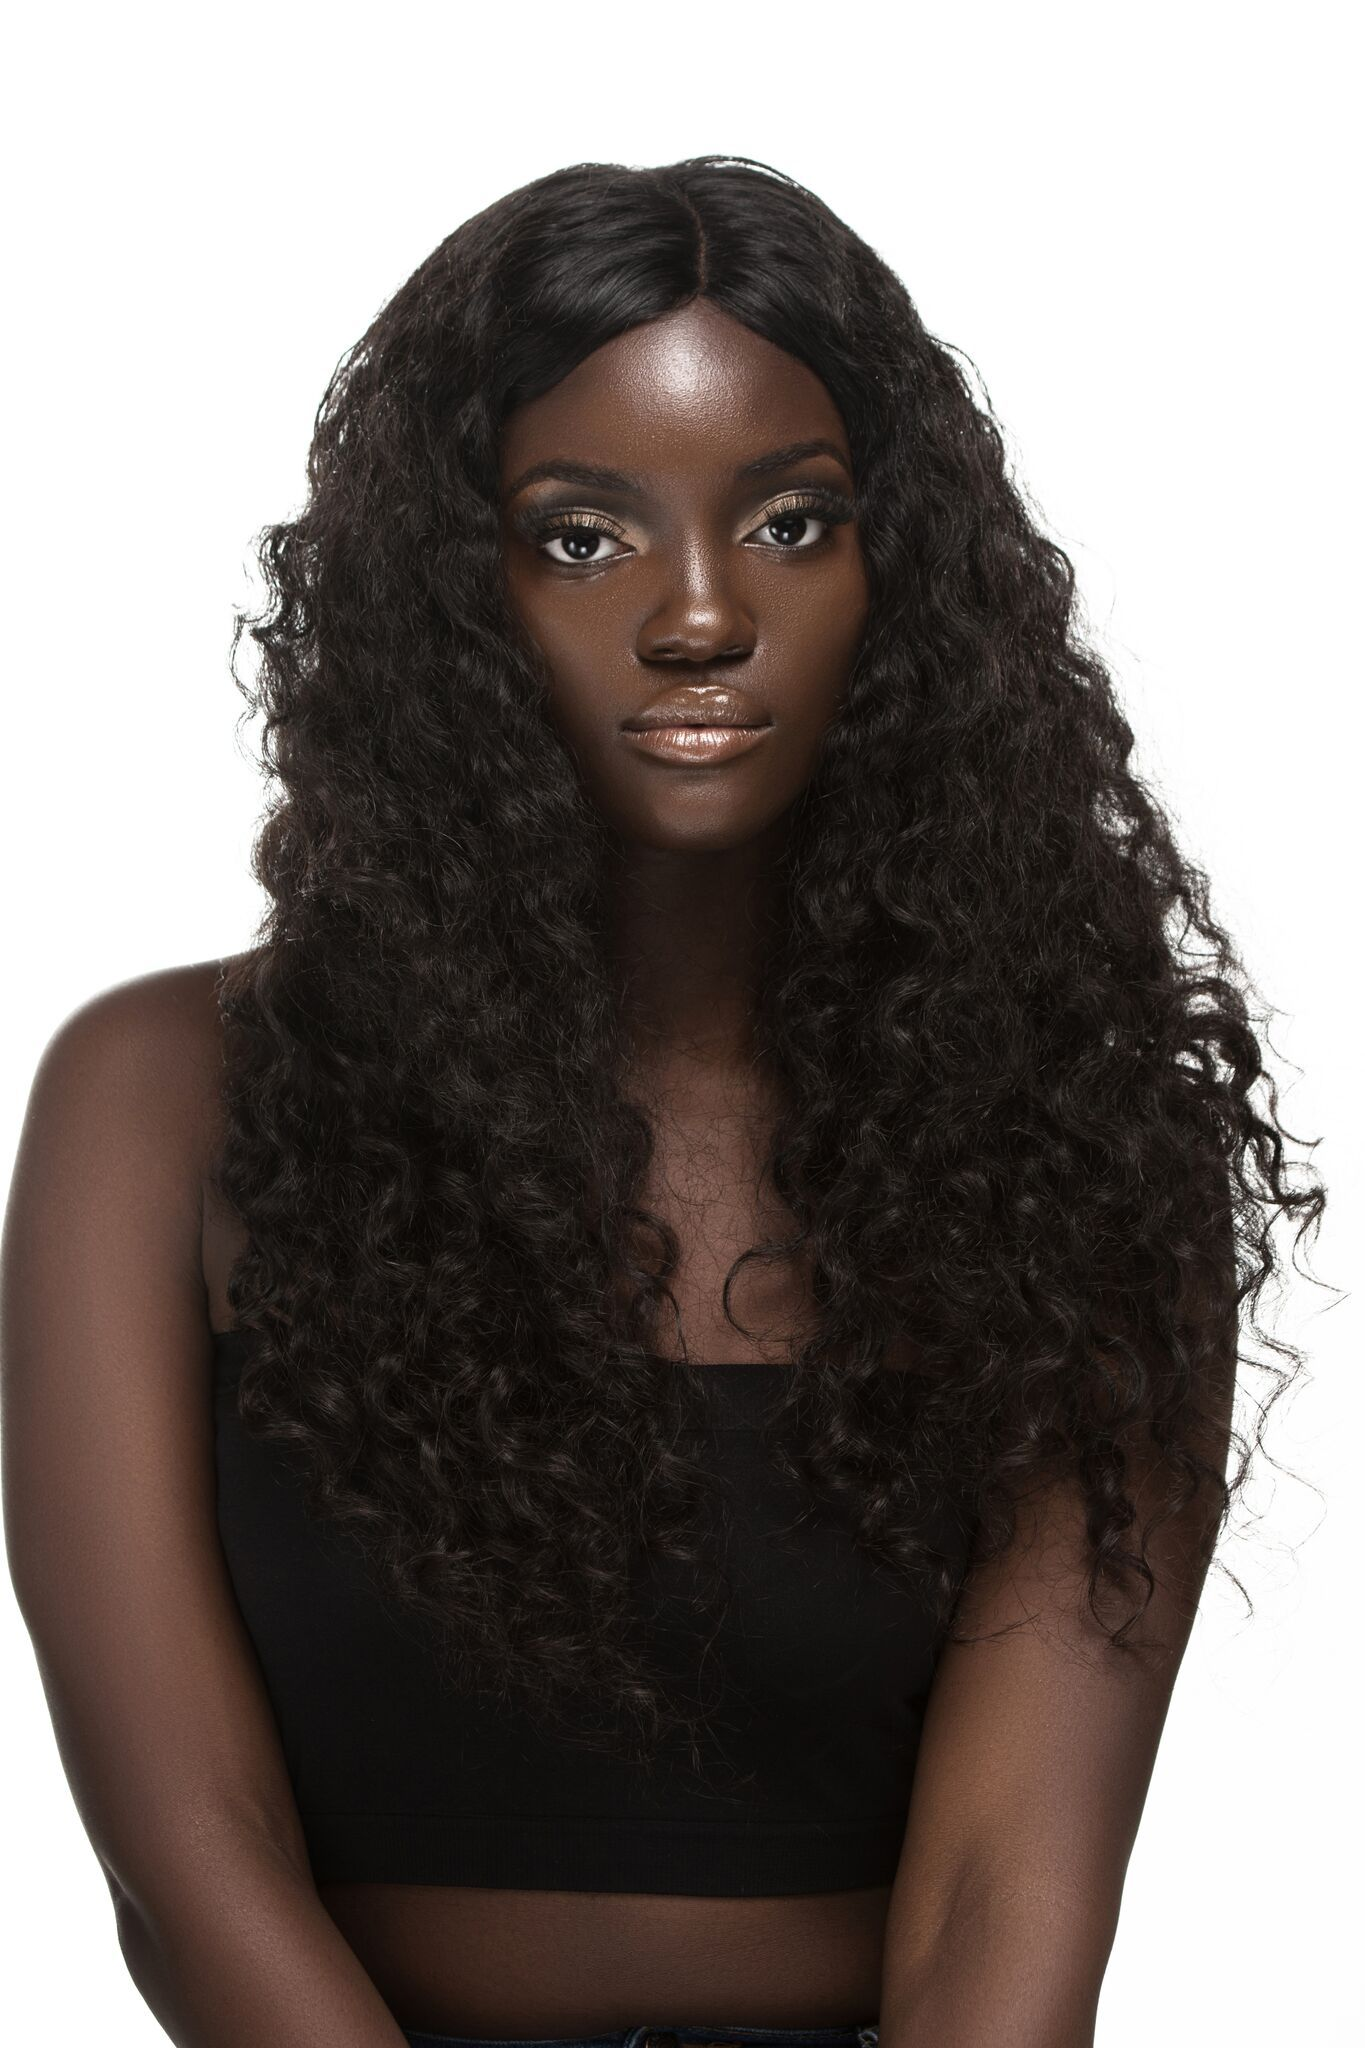 Chic Javore Virgin Indian Natural Curly Hair Extension 95 Chic